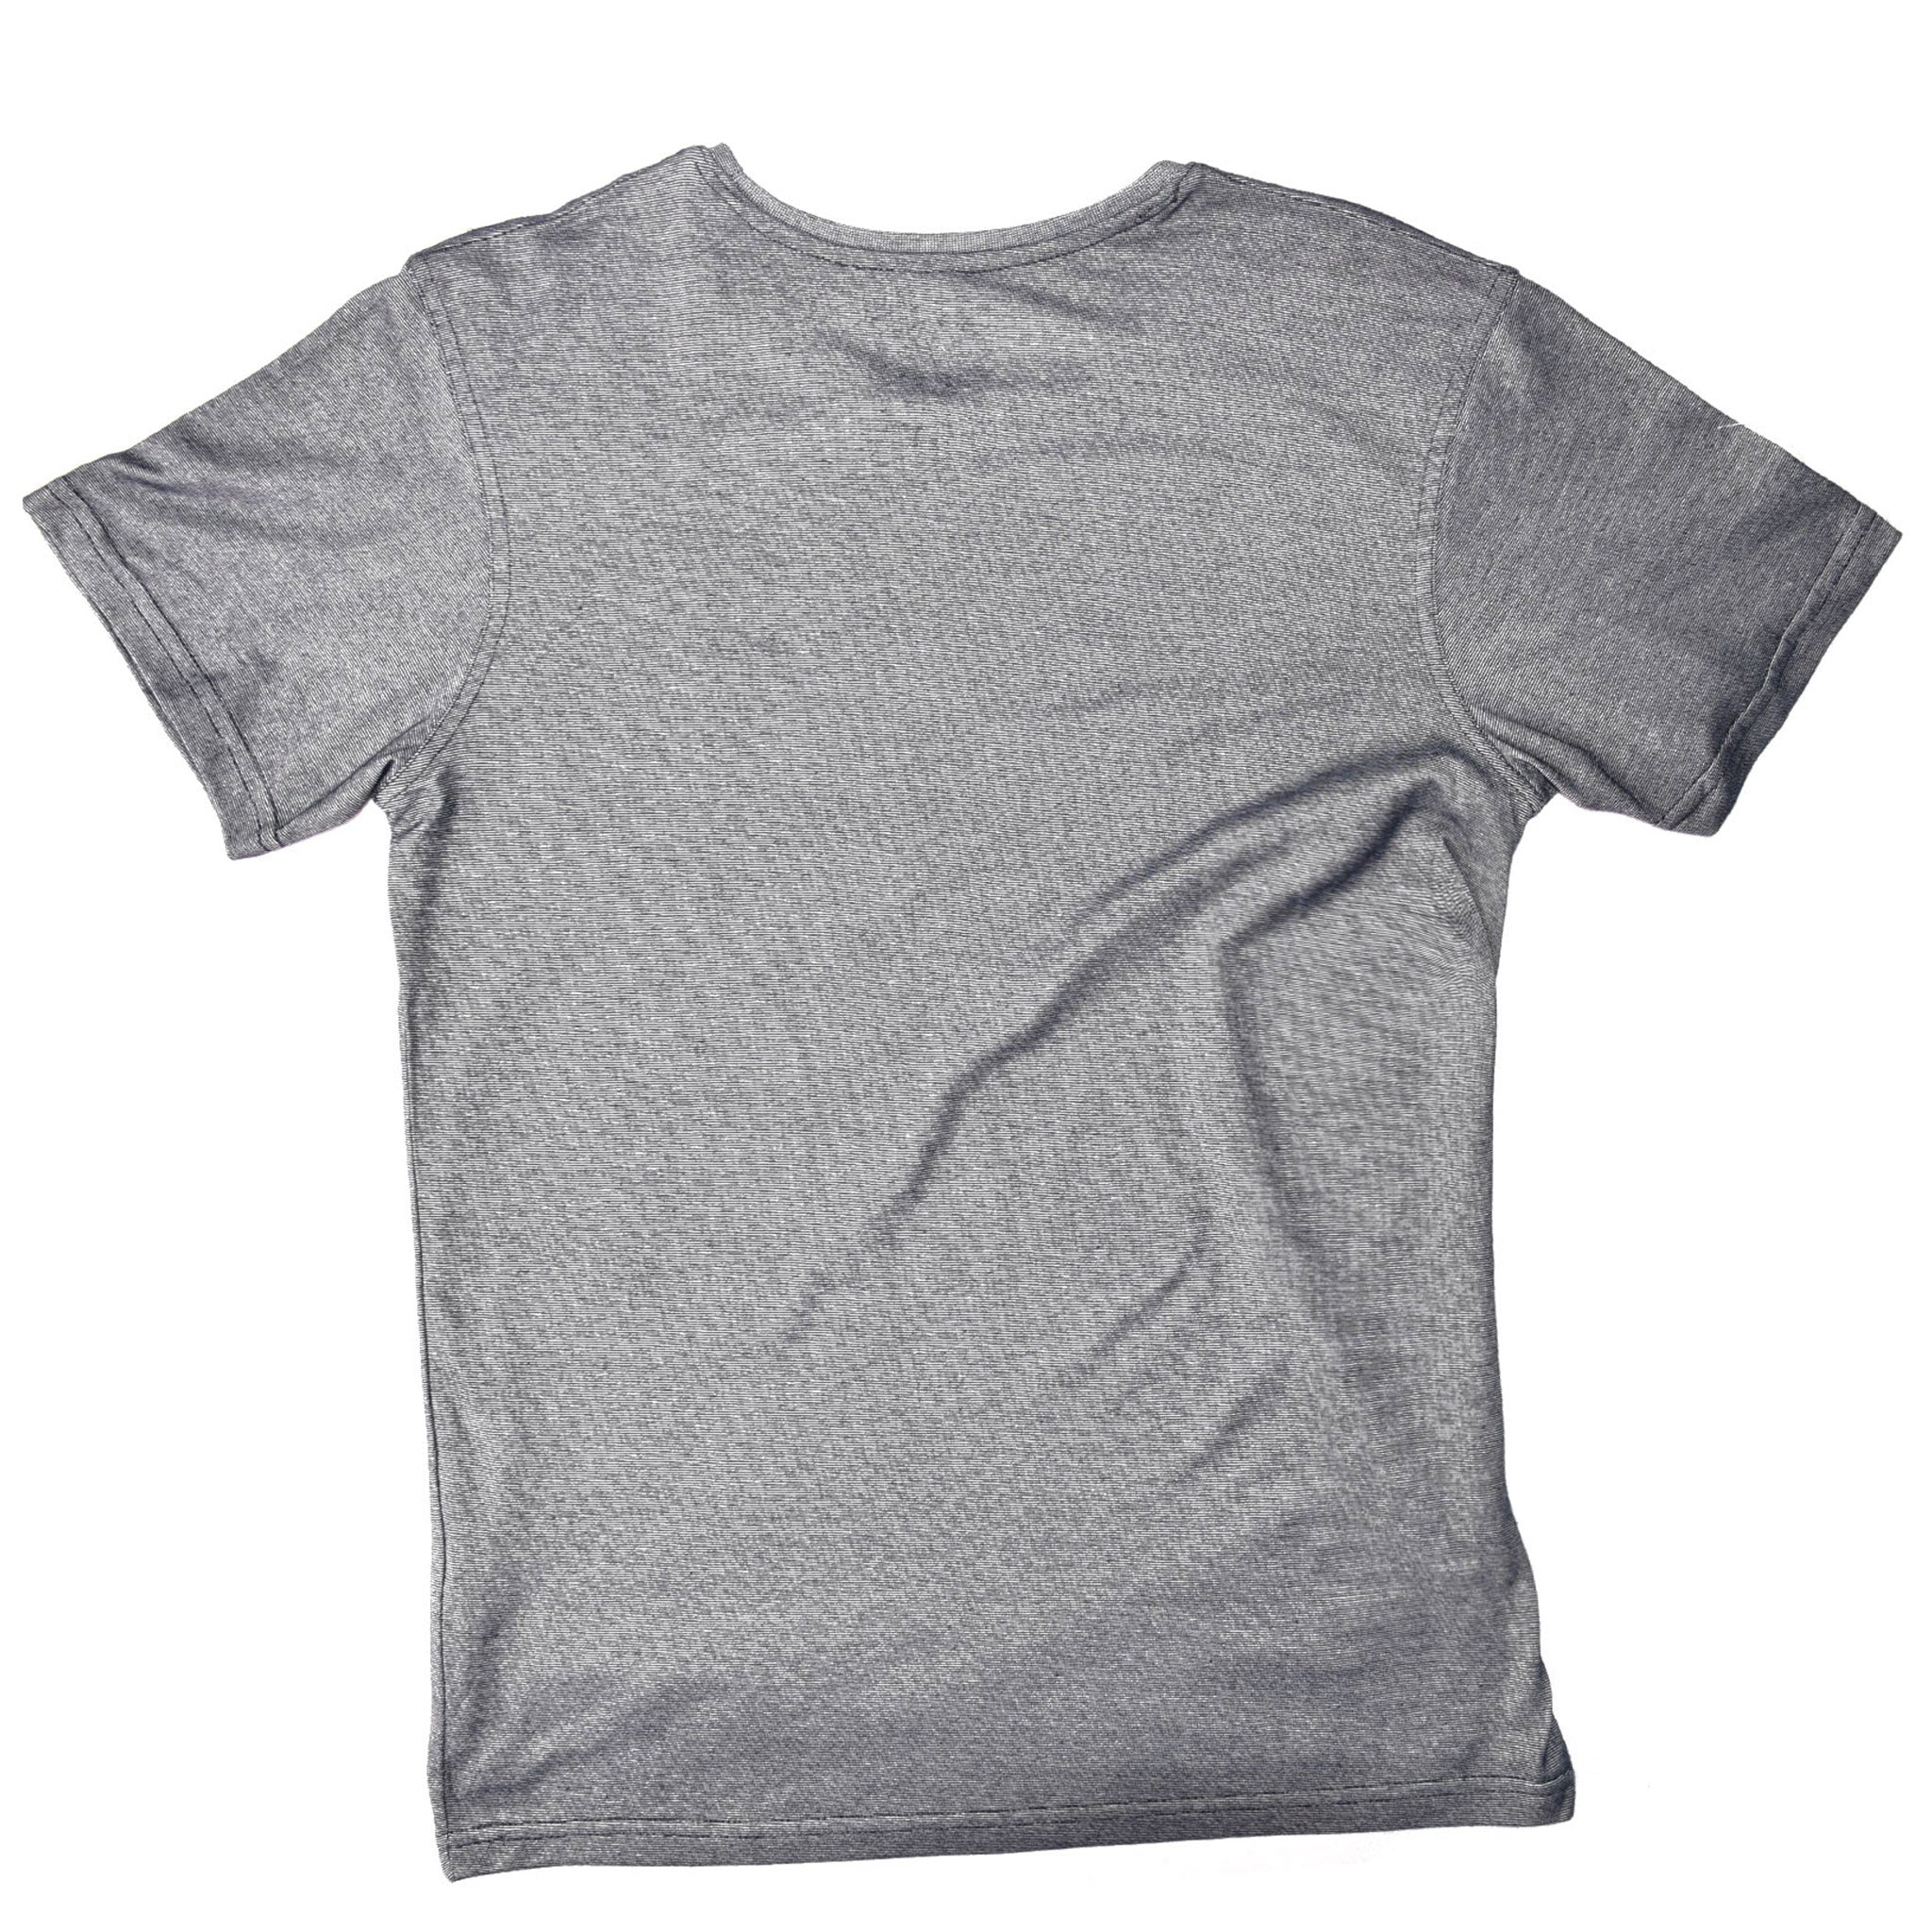 MEN'S S/S PRINTED TEE - CHARCOAL GREY / SURF